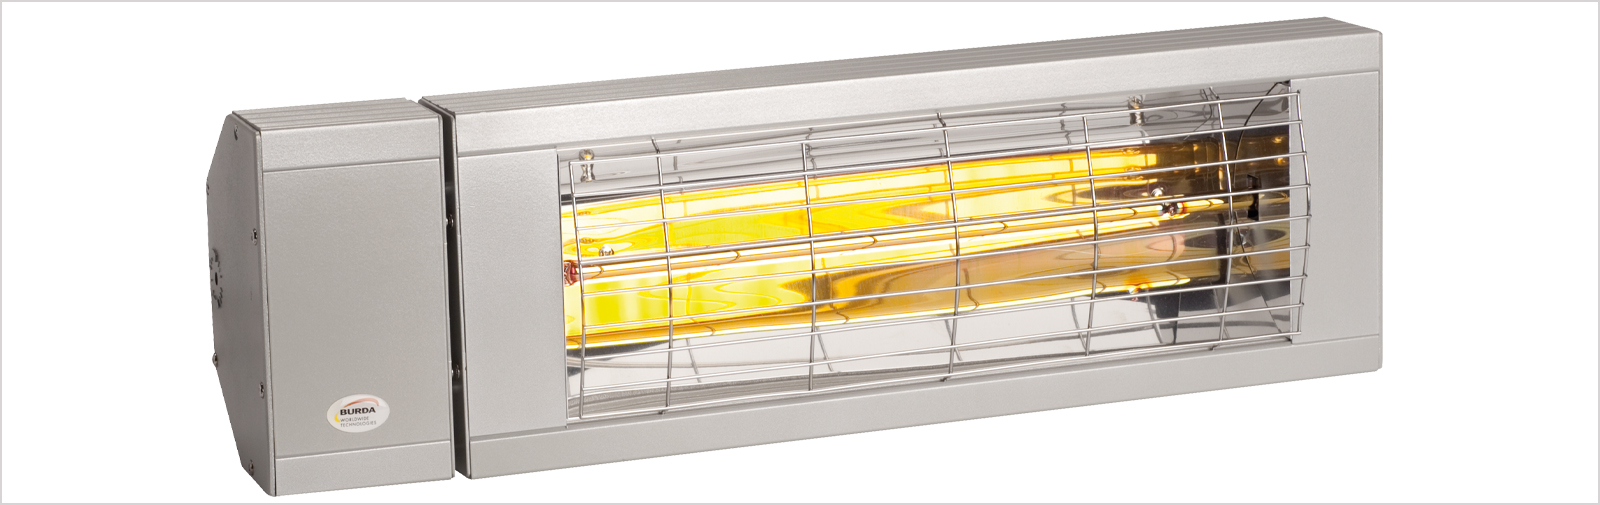 infrared radiant heater IP24